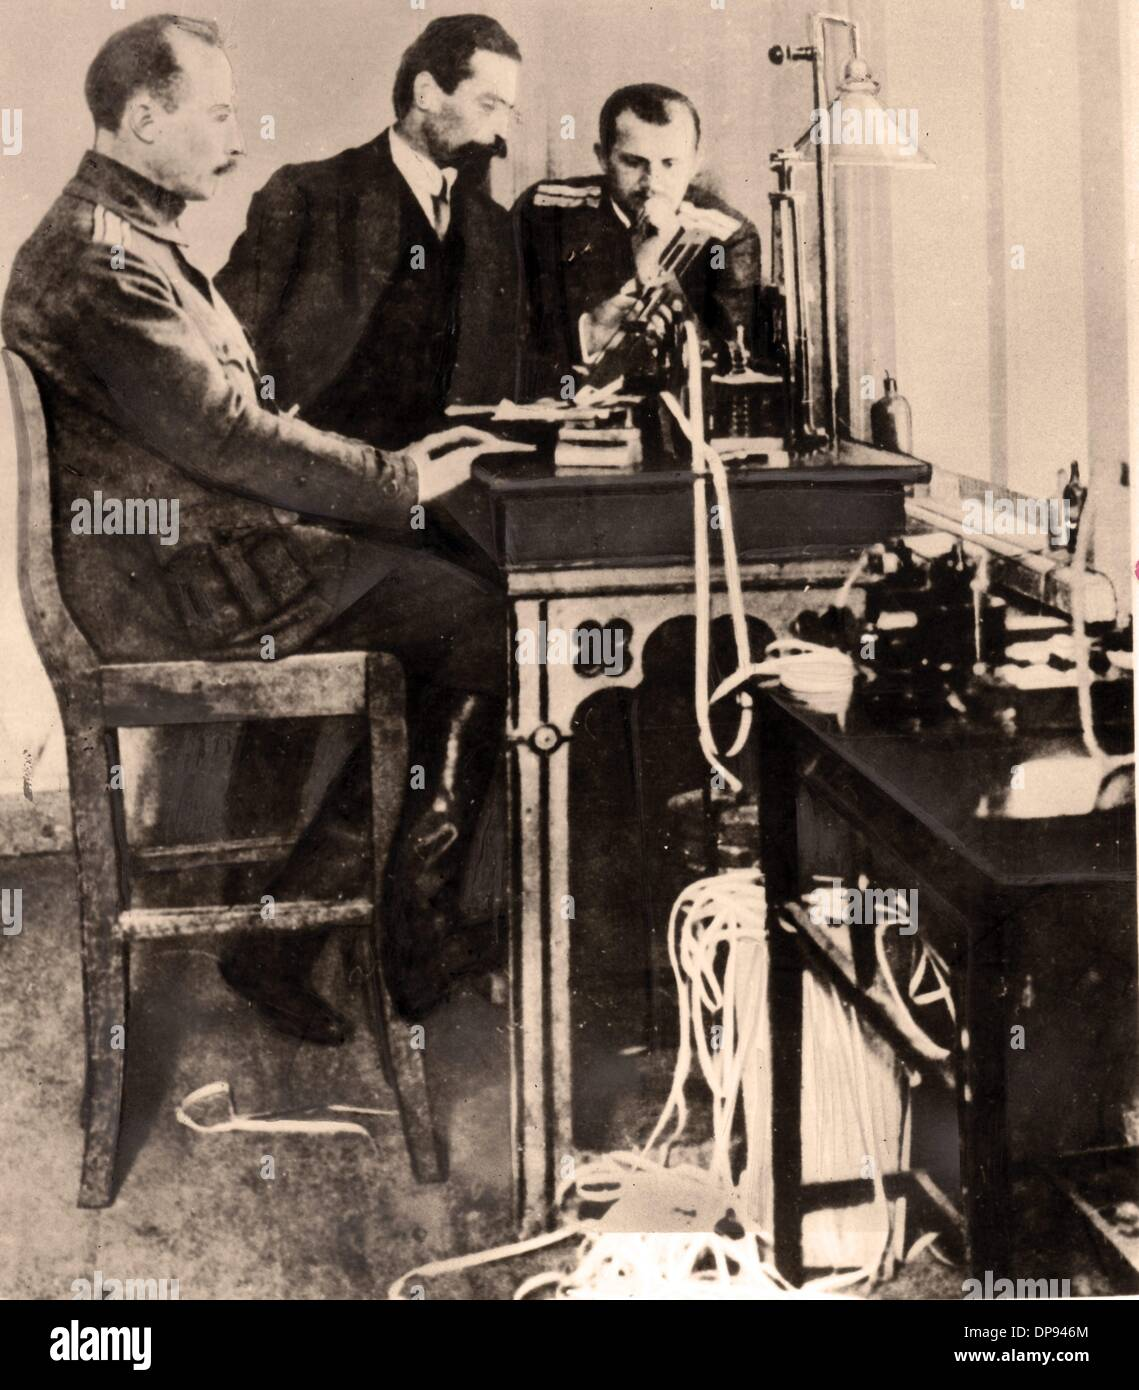 Russian officers telegraph orders for the Russian delegates in the peace negotiations in Brest-Litovsk. The peace negotiations ended with the peace treaty of Brest-Litovsk from 3 March 1918 with the Soviet Union withdrawing from the war. Photo: Berliner Verlag/Archiv - Stock Image